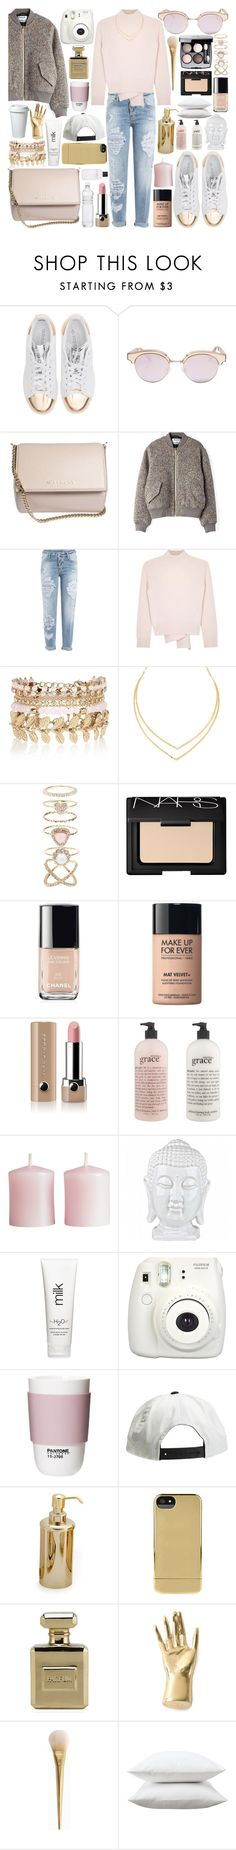 """""""it was you"""" by carolsx ❤ liked on Polyvore featuring adidas Originals, Givenchy, Acne Studios, Dsquared2, Alexander McQueen, River Island, Lana, Accessorize, Chanel and NARS Cosmetics"""